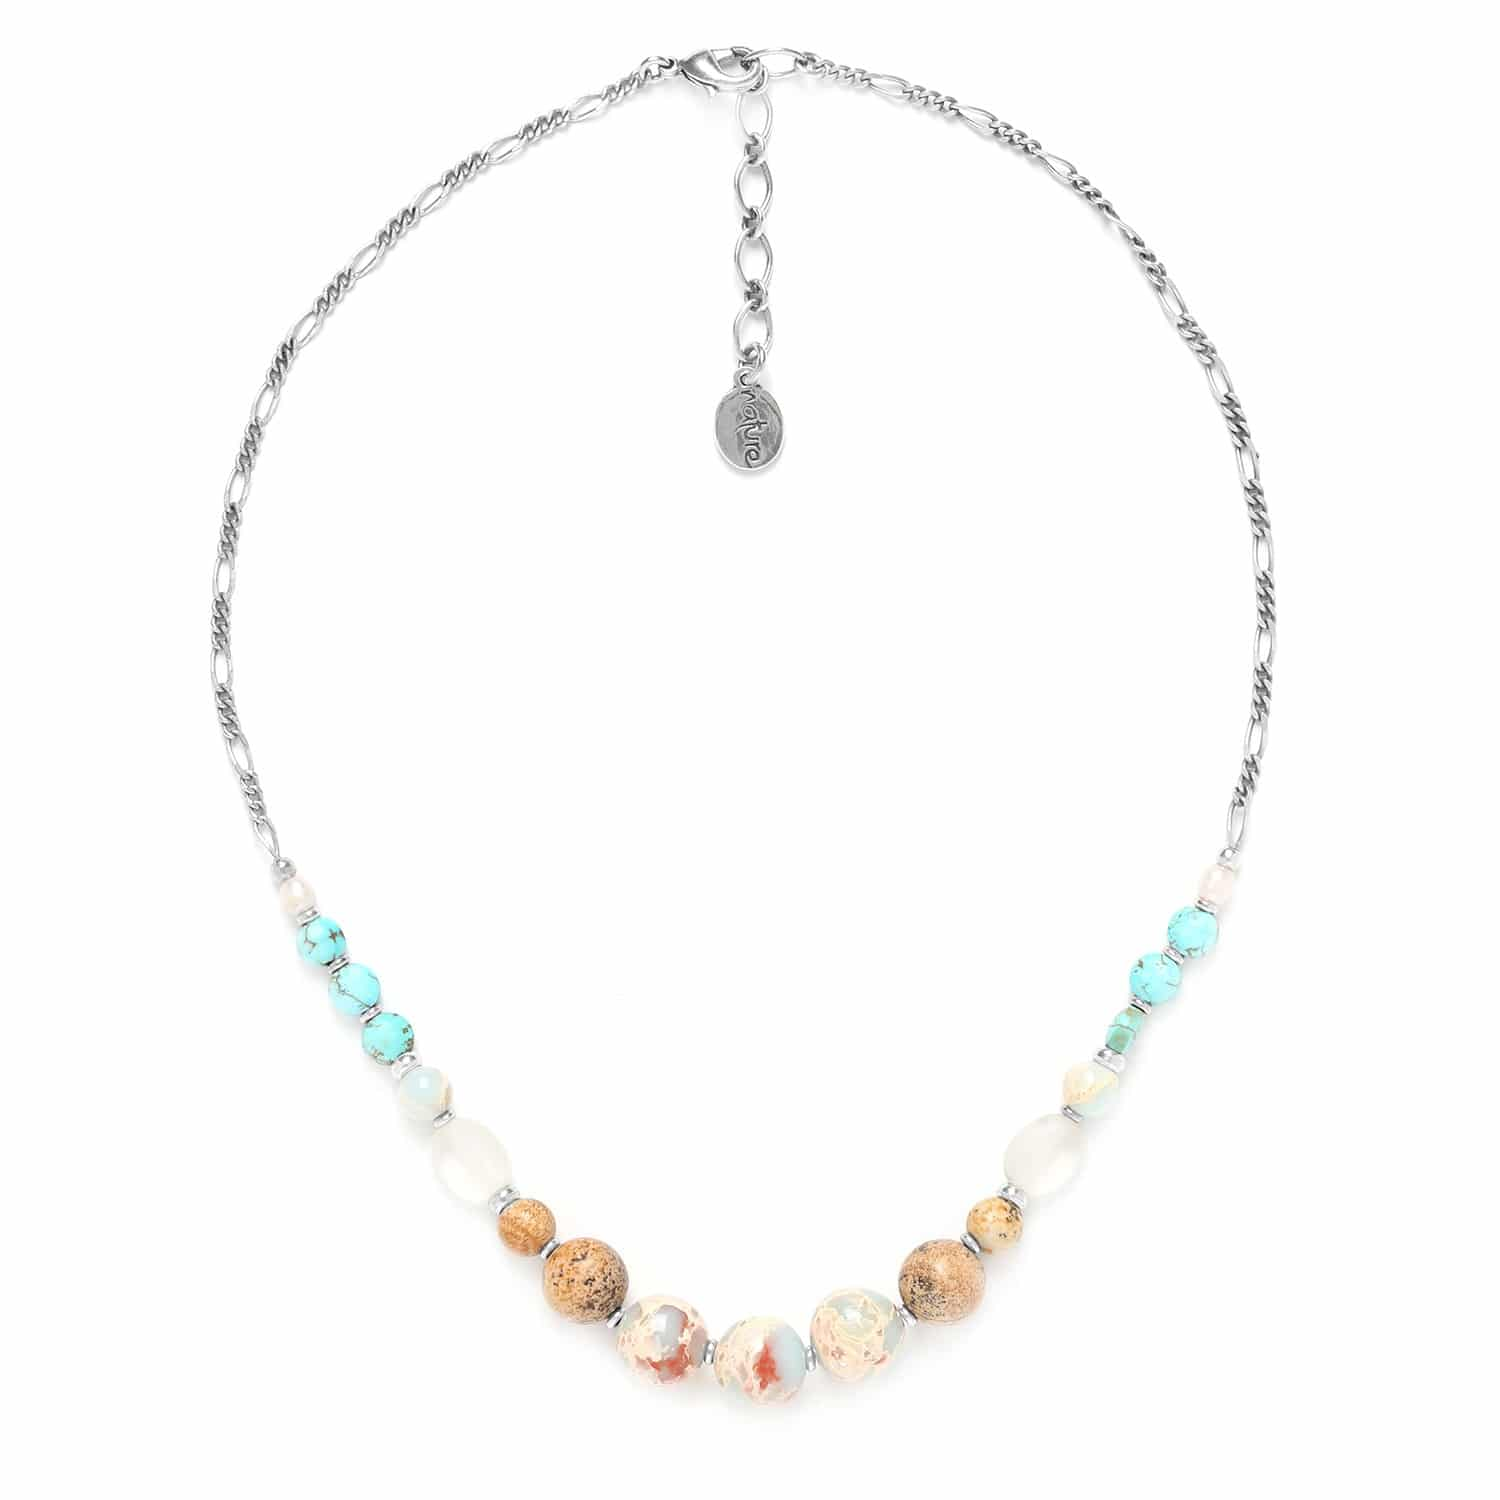 COLORADO assorted round stone bead necklace